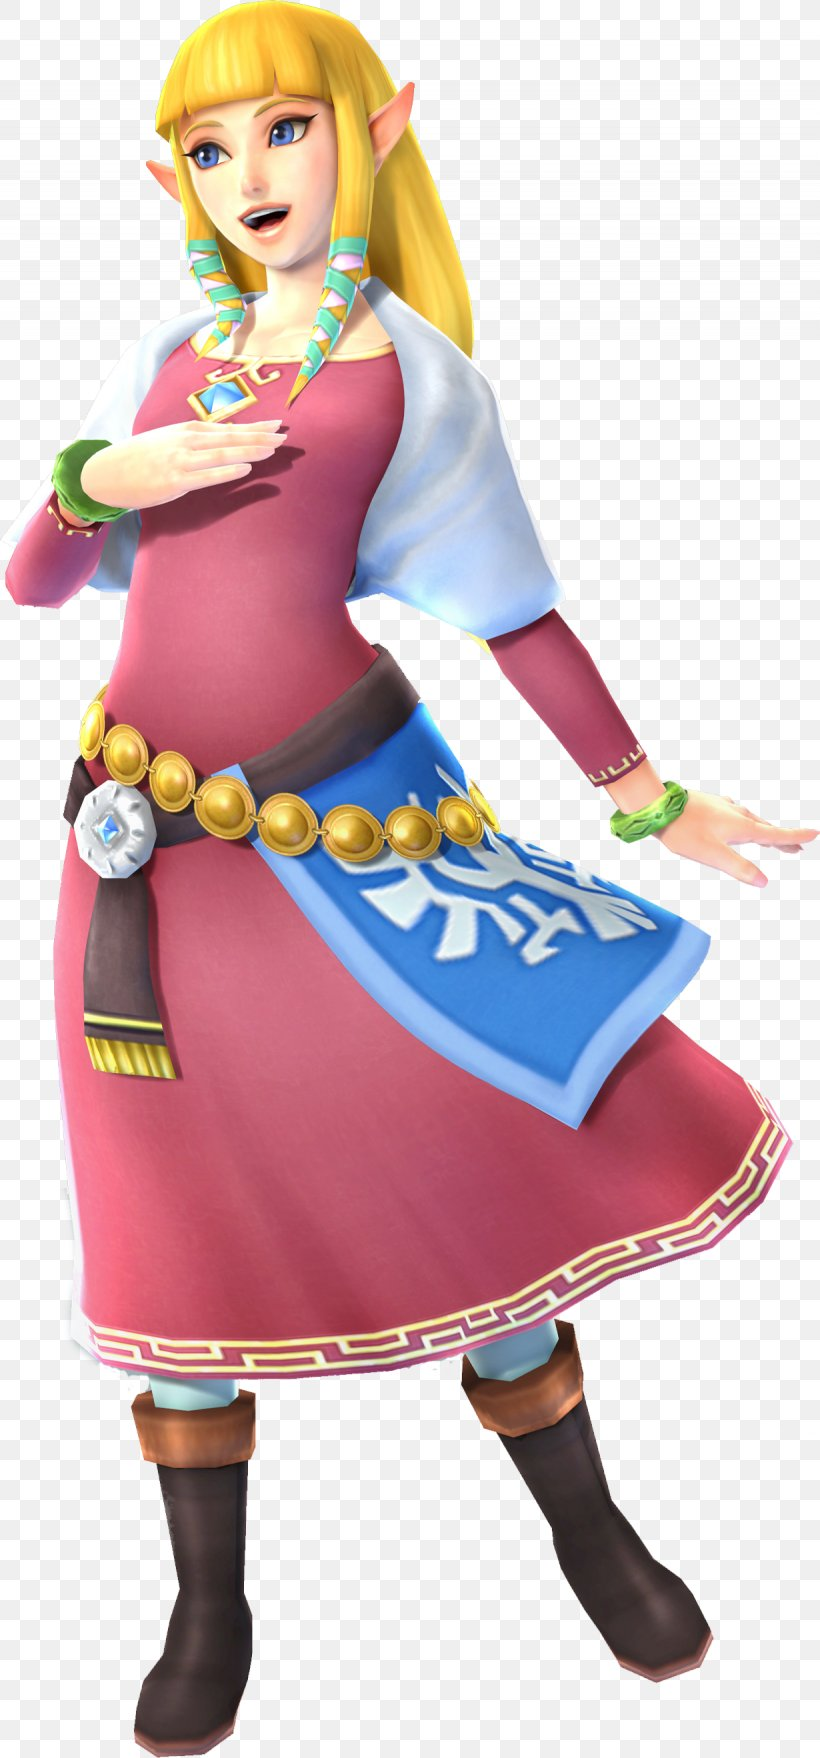 The Legend Of Zelda: Skyward Sword The Legend Of Zelda: Twilight Princess HD Princess Zelda Hyrule Warriors Link, PNG, 1230x2638px, Legend Of Zelda Skyward Sword, Action Figure, Clothing, Costume, Doll Download Free